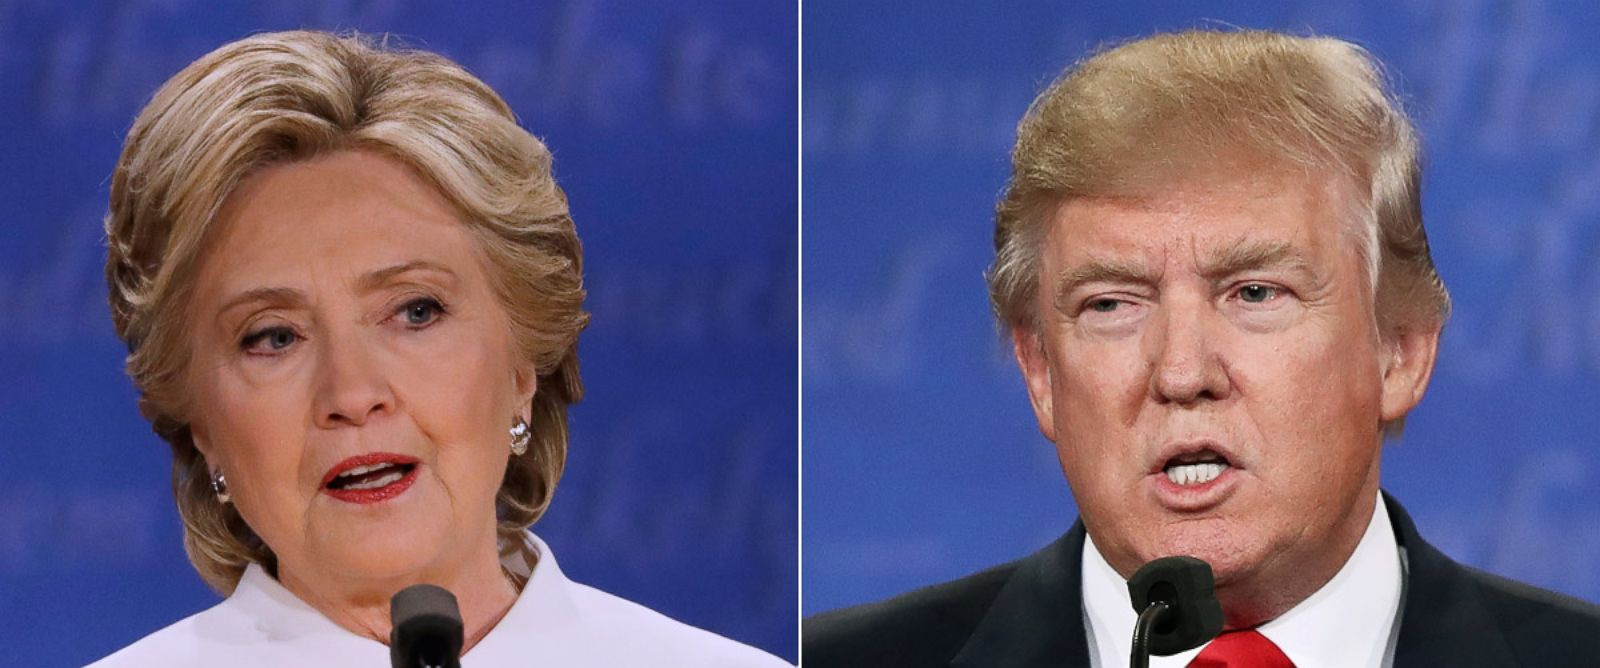 PHOTO: Hillary Clinton and Donald Trump at the third presidential debate at UNLV in Las Vegas, Oct. 19, 2016.